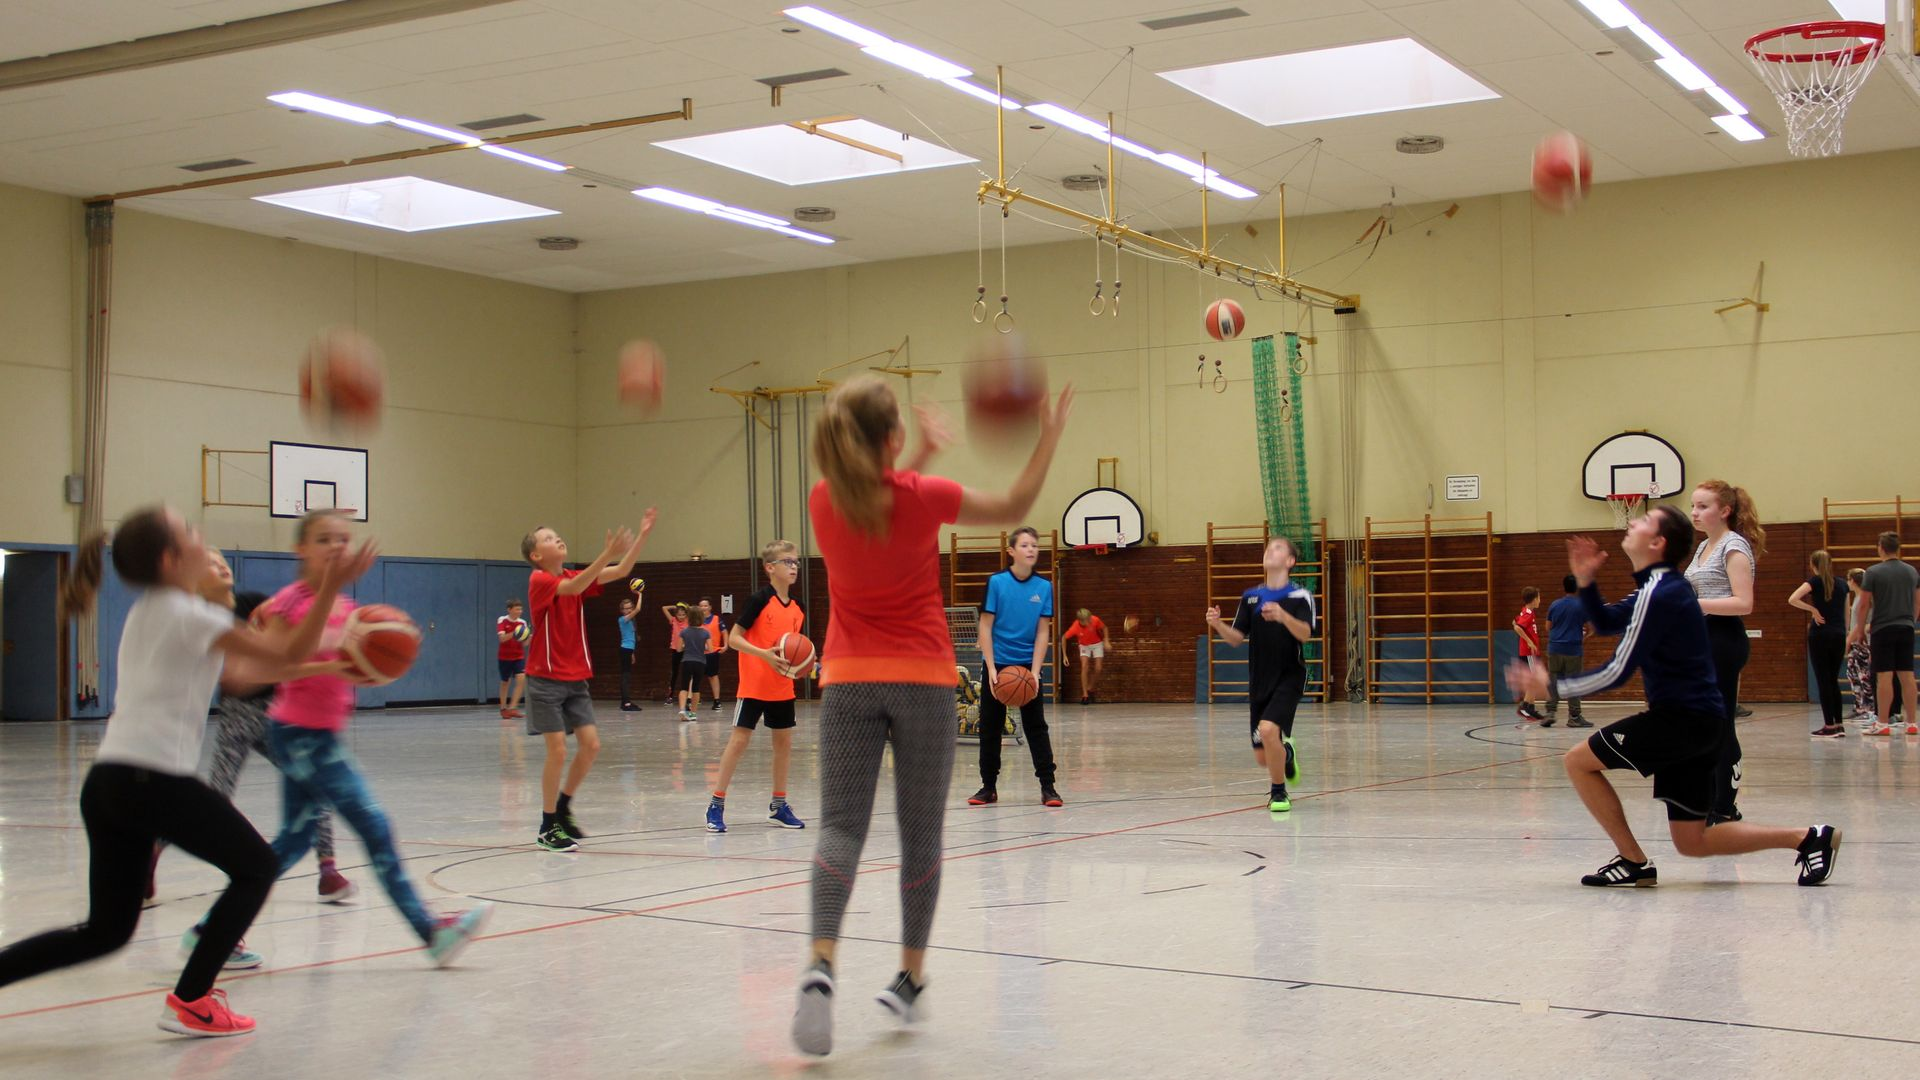 Basketball-Aktionstag 2018 - Schülerinnen in Aktion